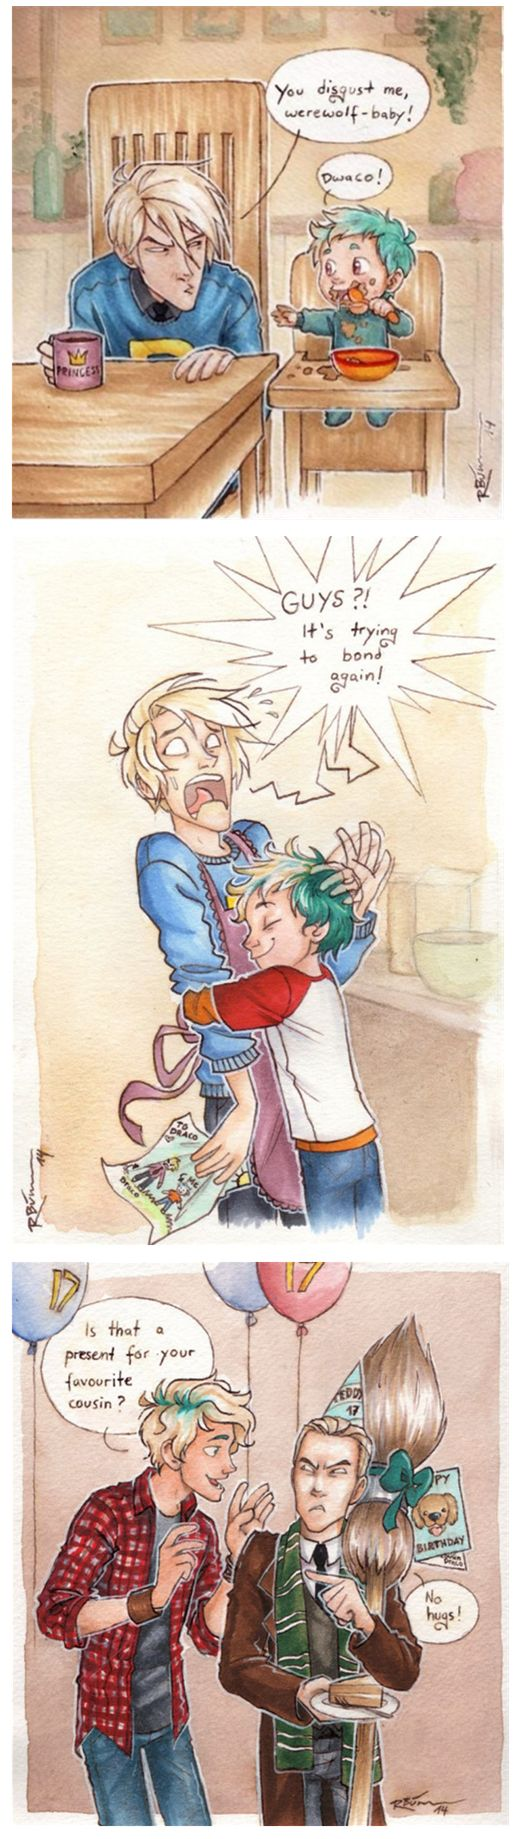 Draco and Teddy (Draco wears a Weasley sweater!)